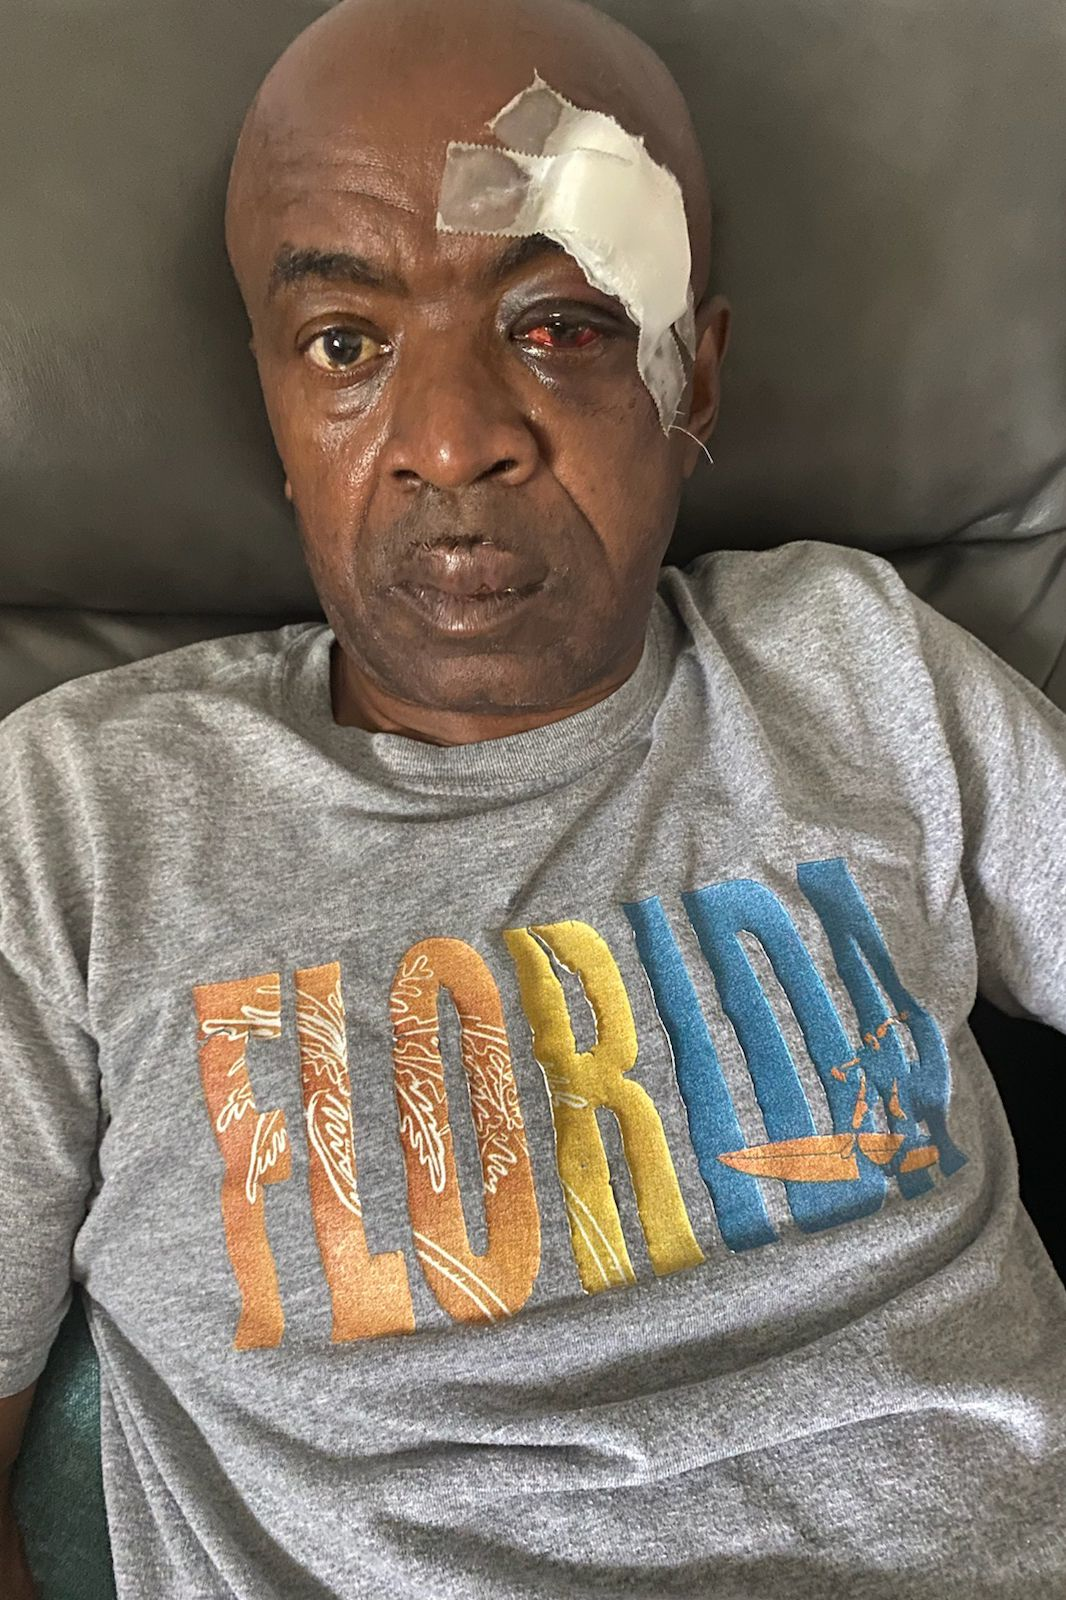 MTA bus driver Anthony Reid was assaulted after asking a passenger to put on a face mask.